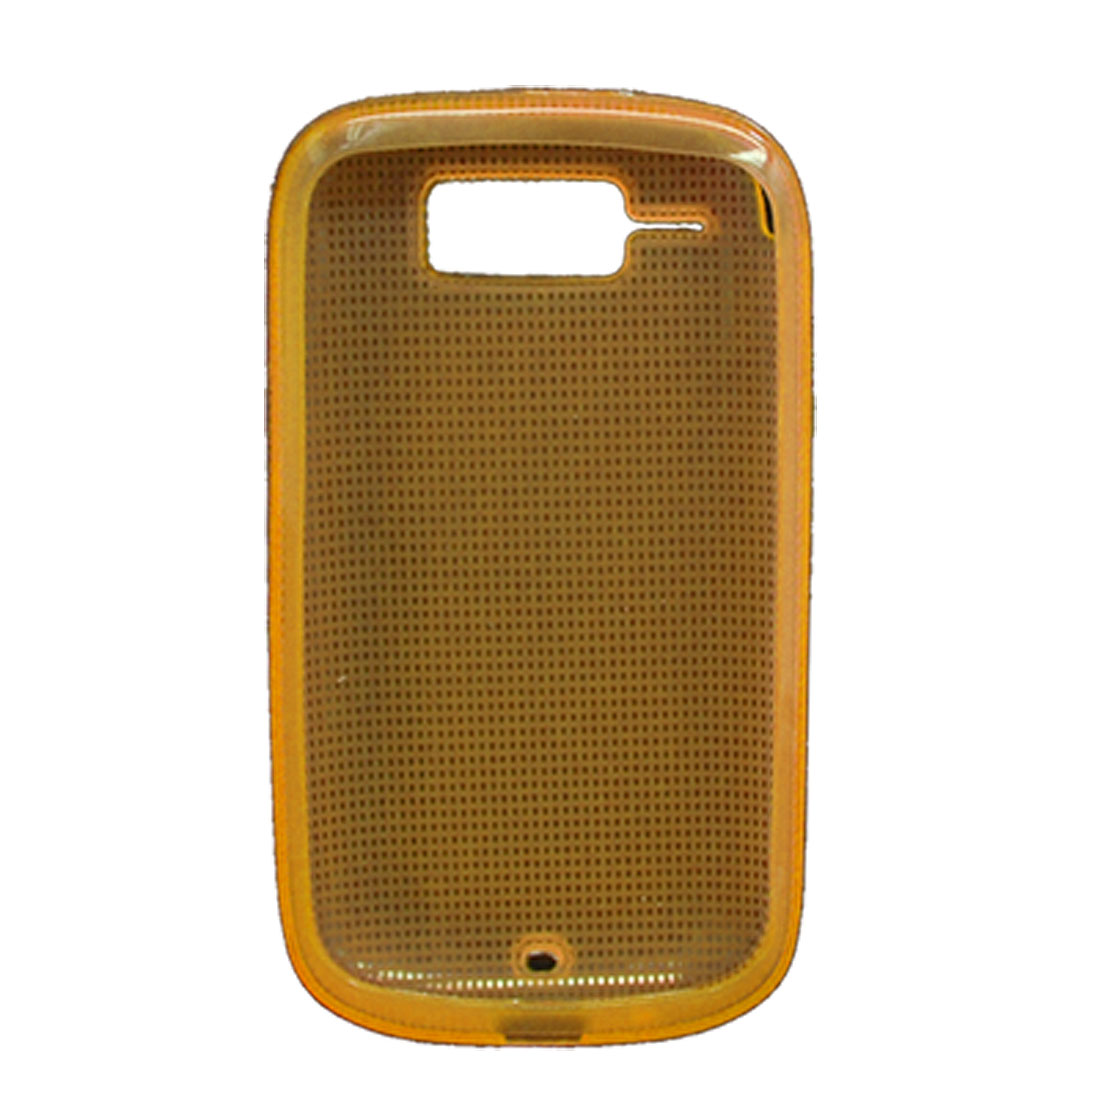 Orange Protective Soft Plastic Case for HTC T4242 Cruise